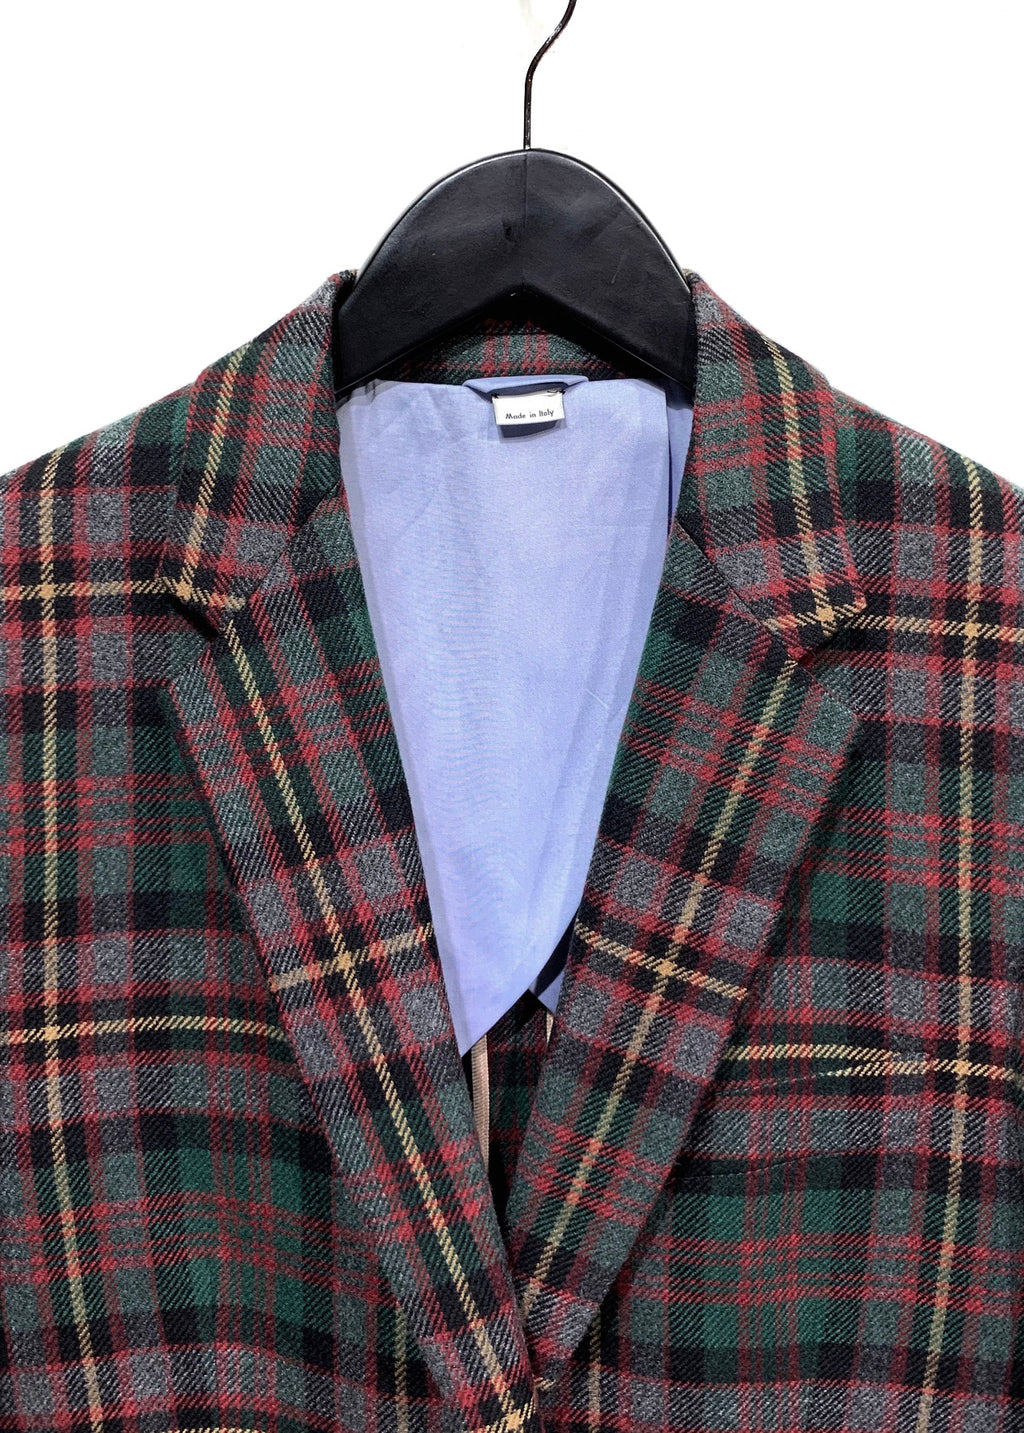 Gucci FW17 Green Red Grey Plaid Cashmere Blazer